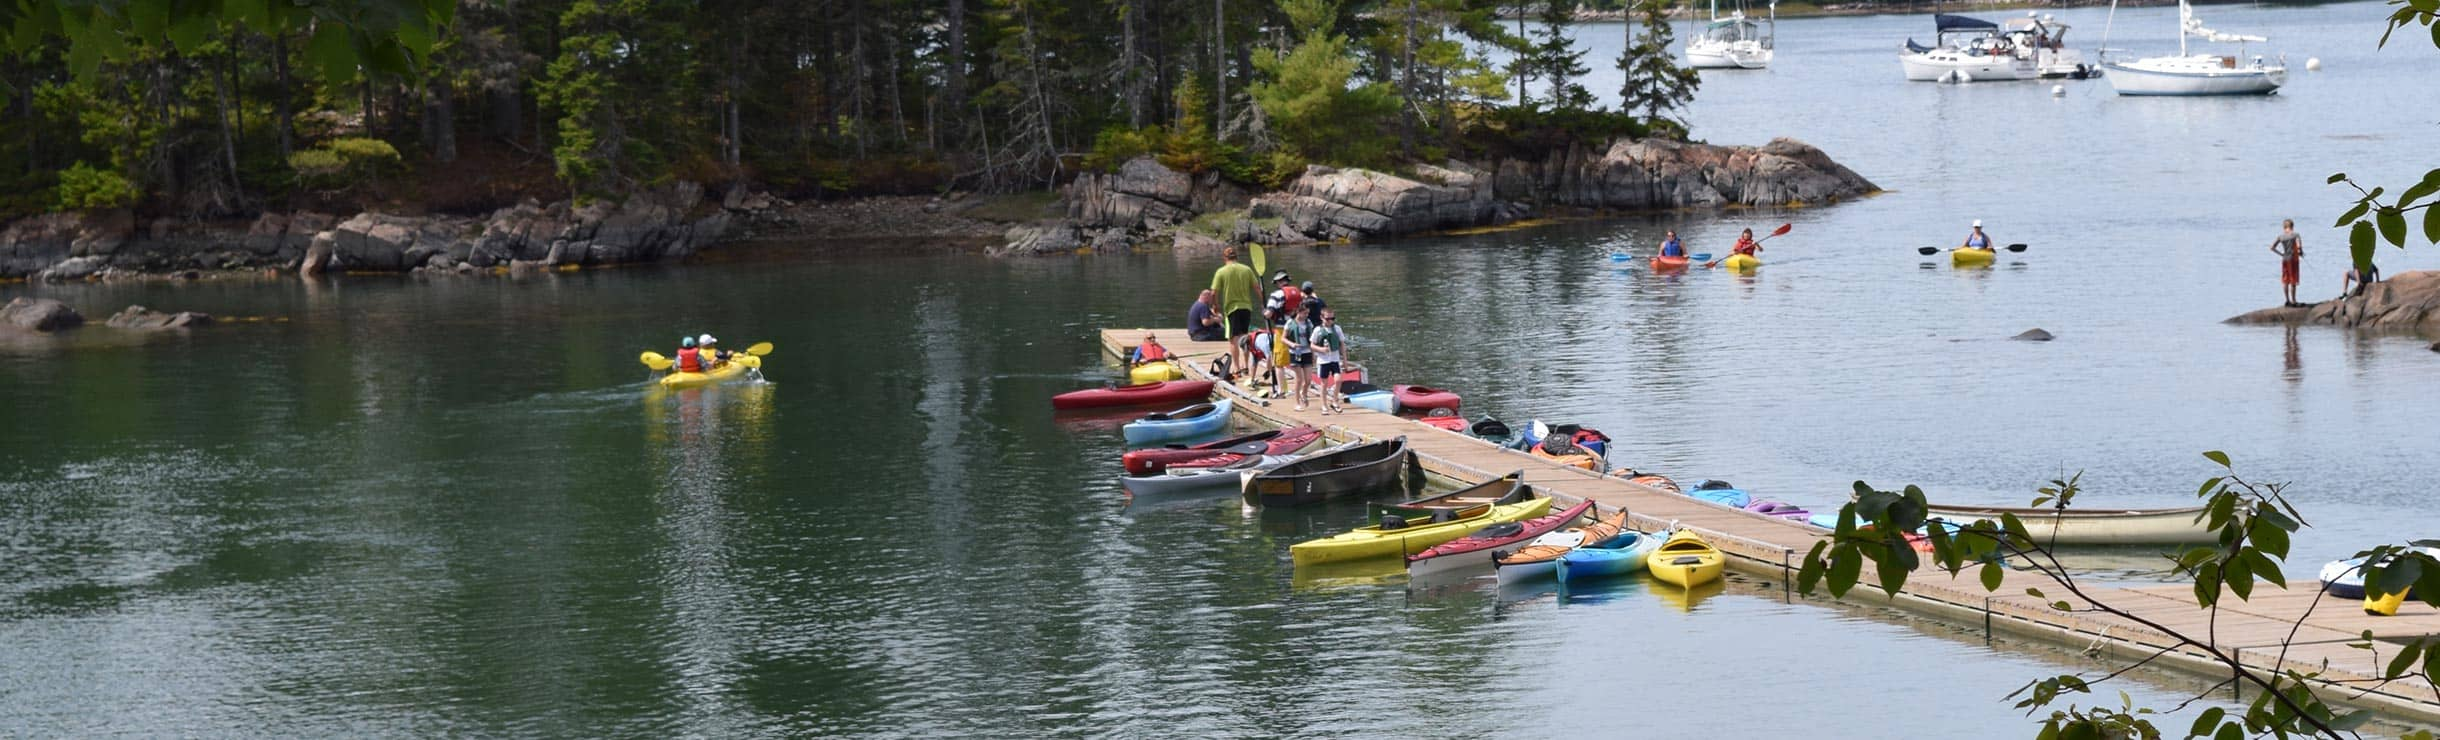 floating dock at mount desert campground near bar harbor